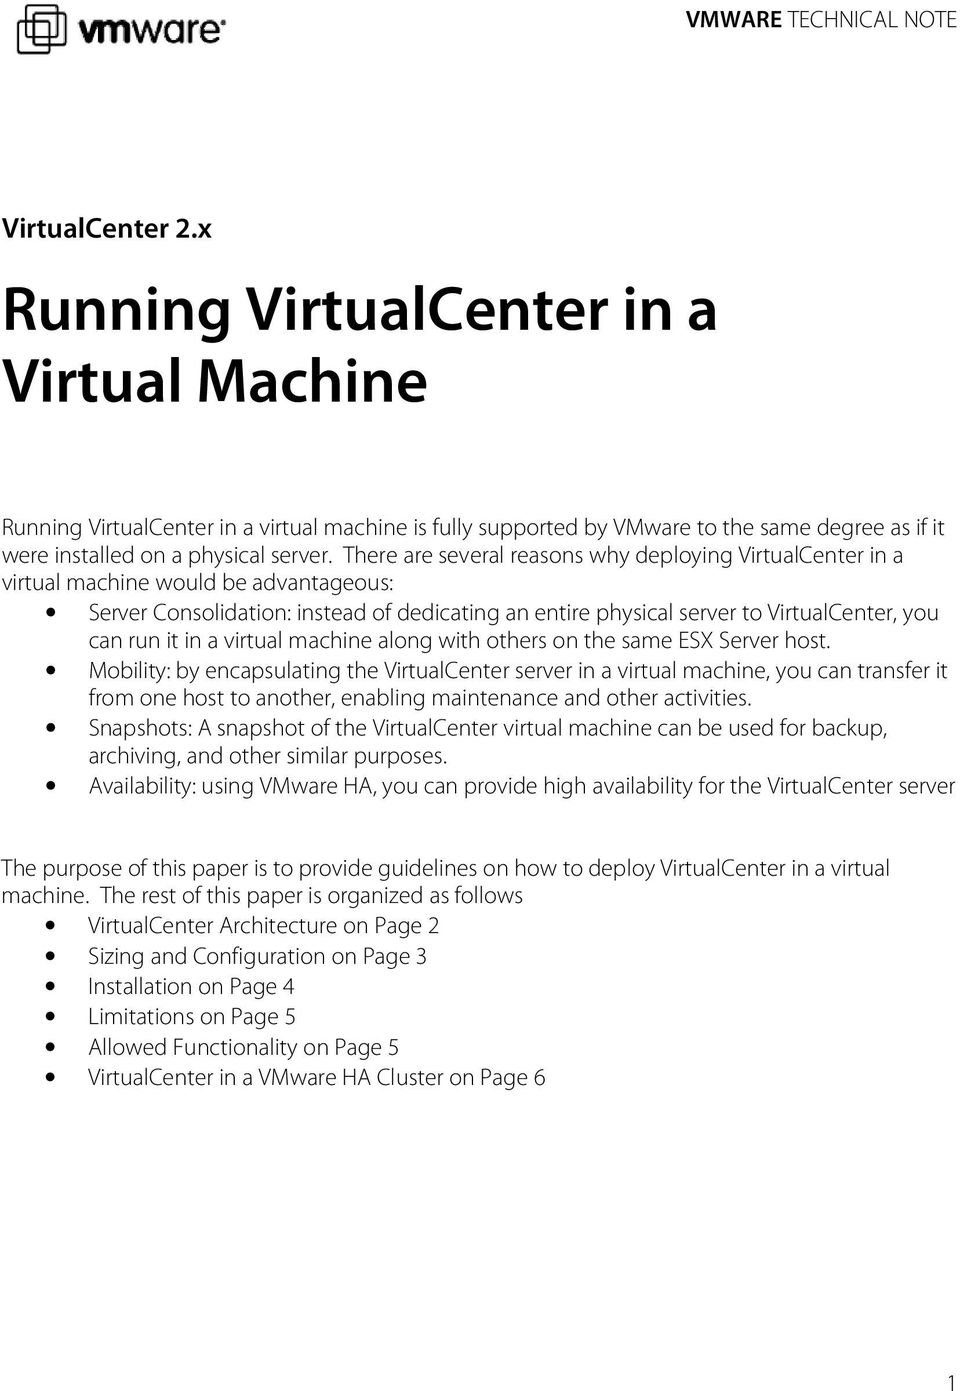 There are several reasons why deploying VirtualCenter in a virtual machine would be advantageous: Server Consolidation: instead of dedicating an entire physical server to VirtualCenter, you can run